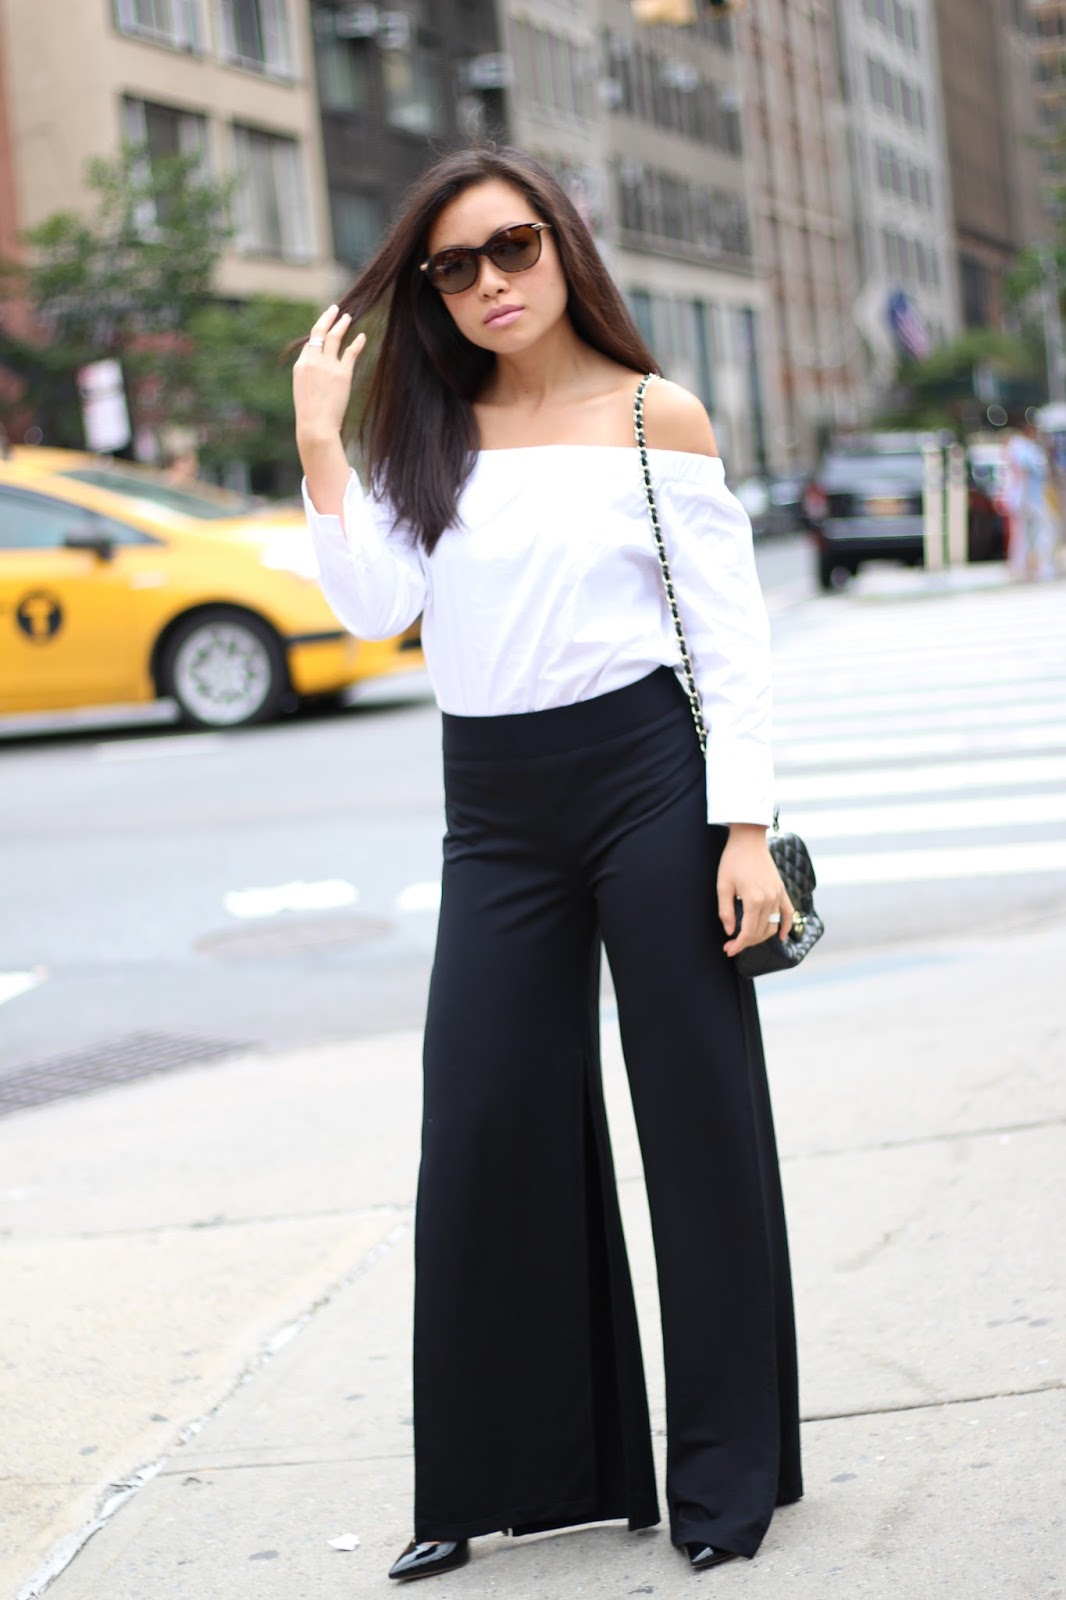 split pants off-the-shoulder top